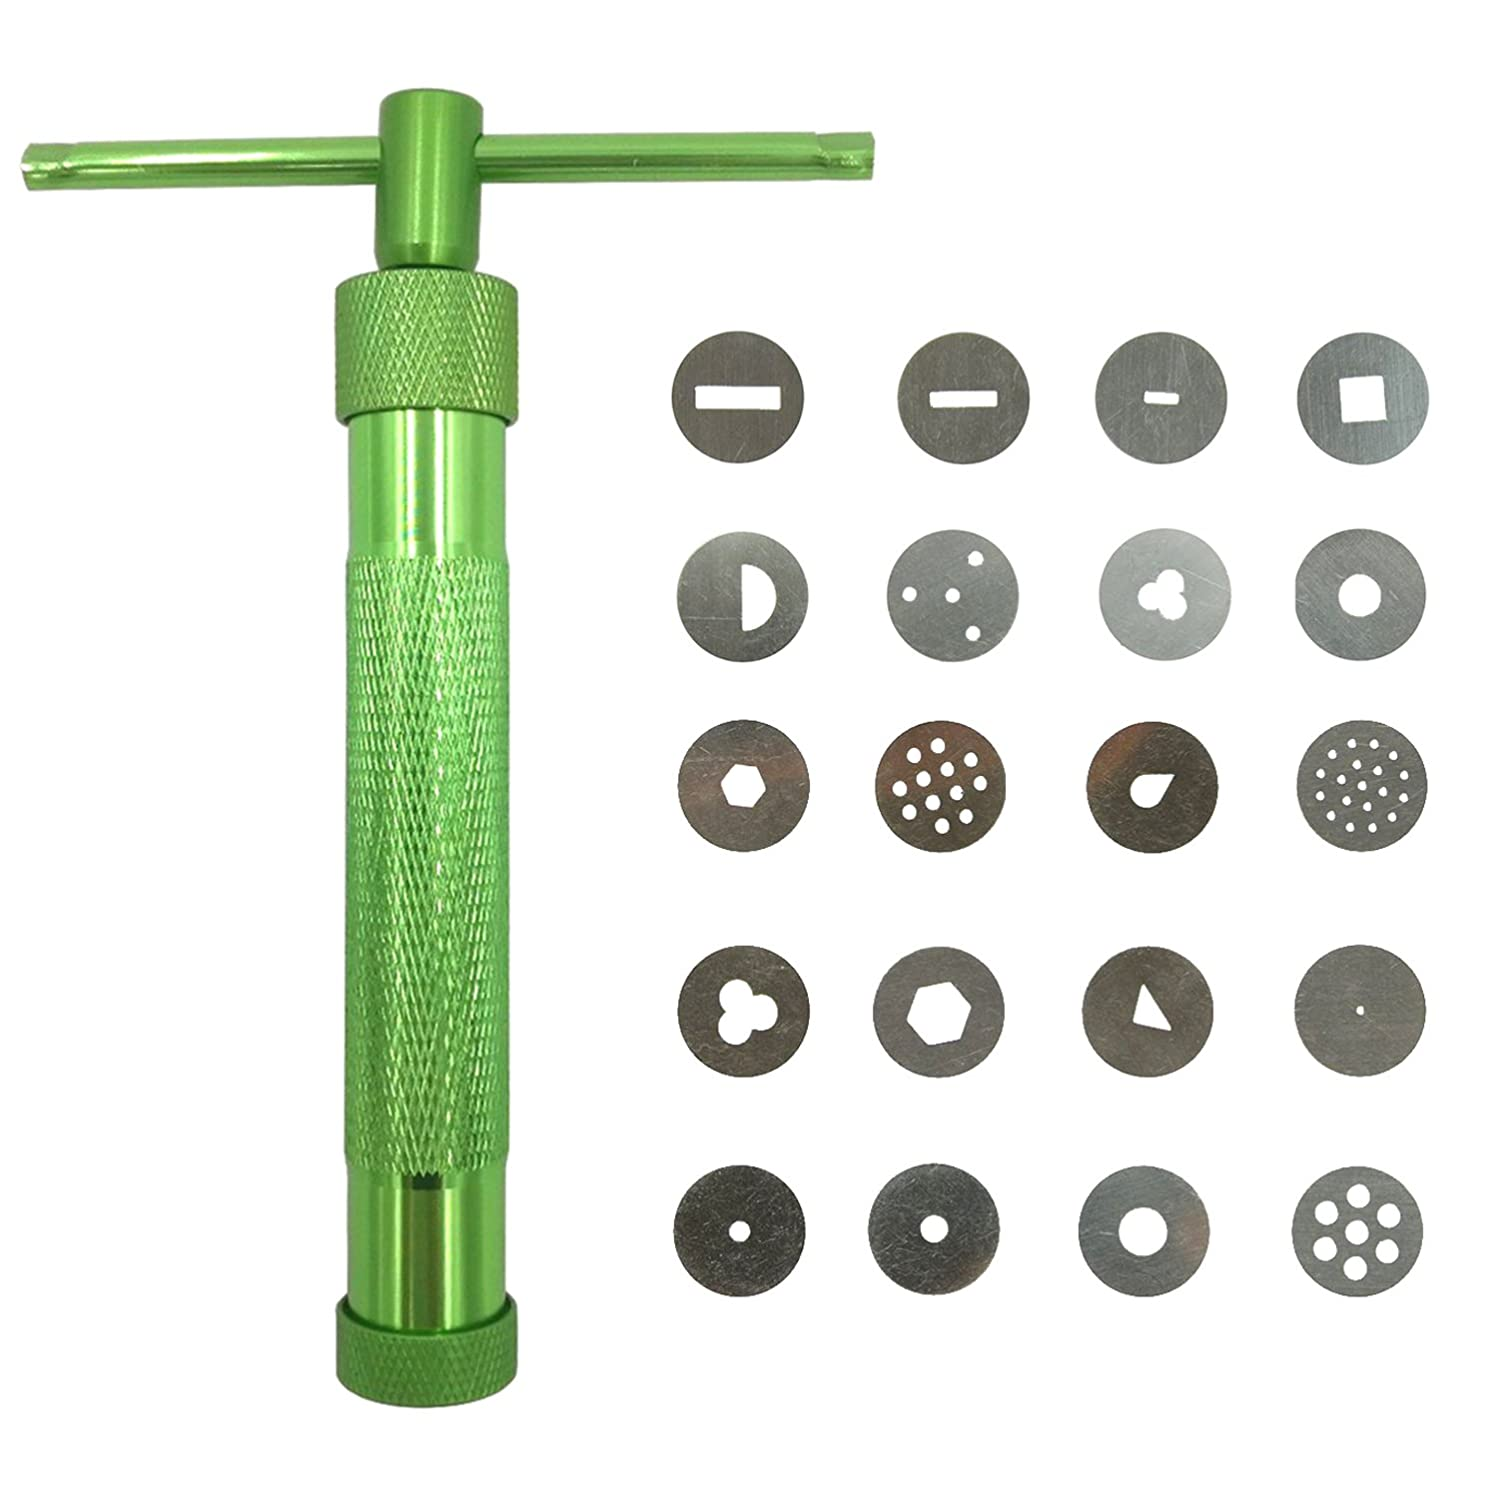 DYWISHKEY Clay Extruder Clay Gun Tool with 20 Discs (Green)